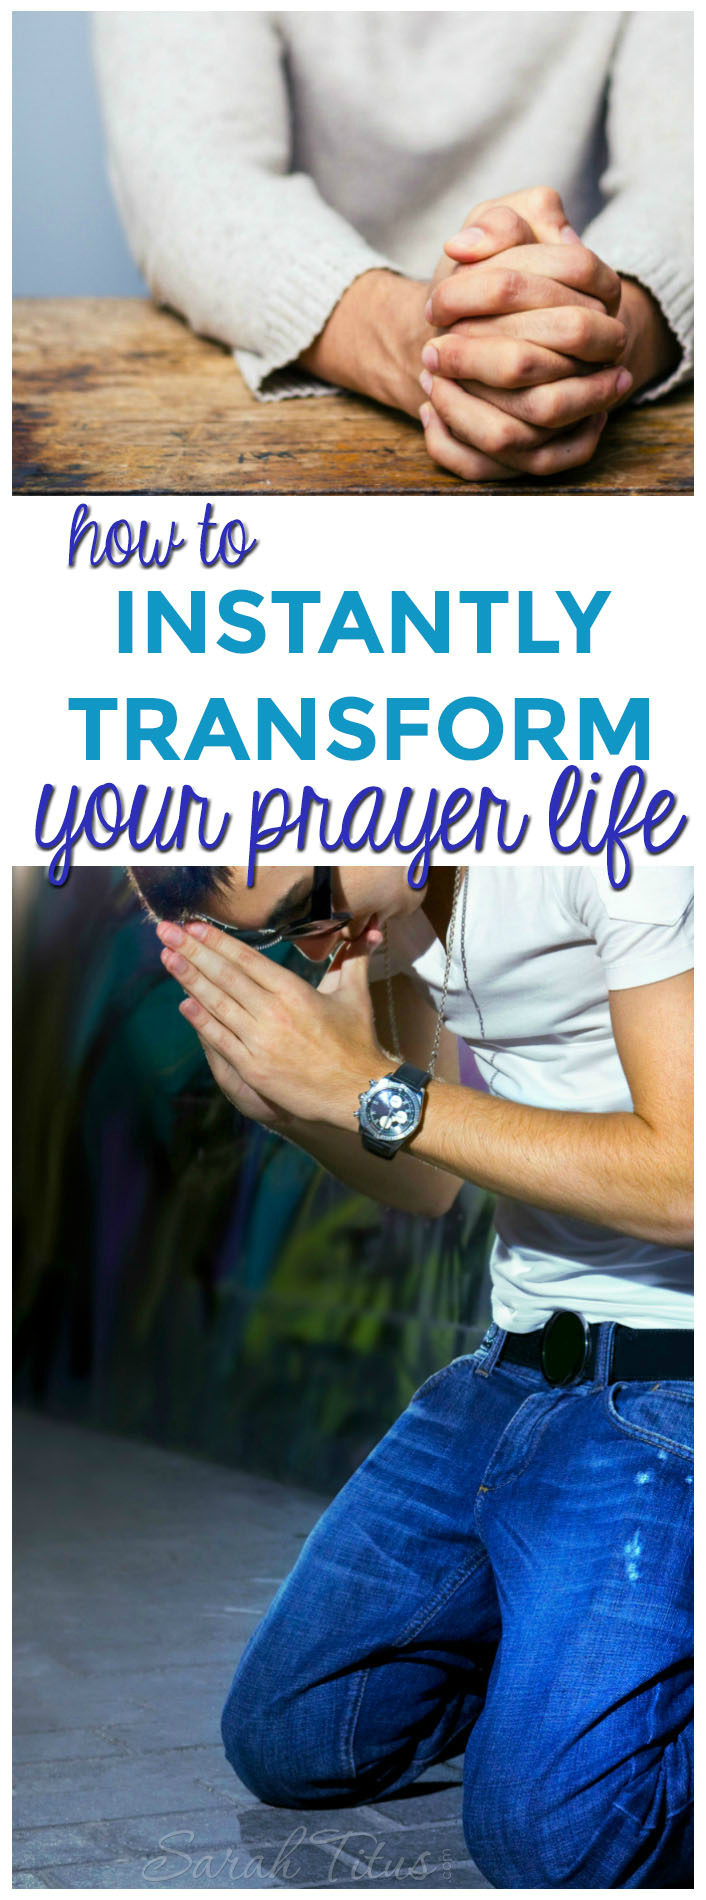 If you go to God in prayer only when you need something, you are horribly missing out! Here's how to instantly transform your prayer life for the better!